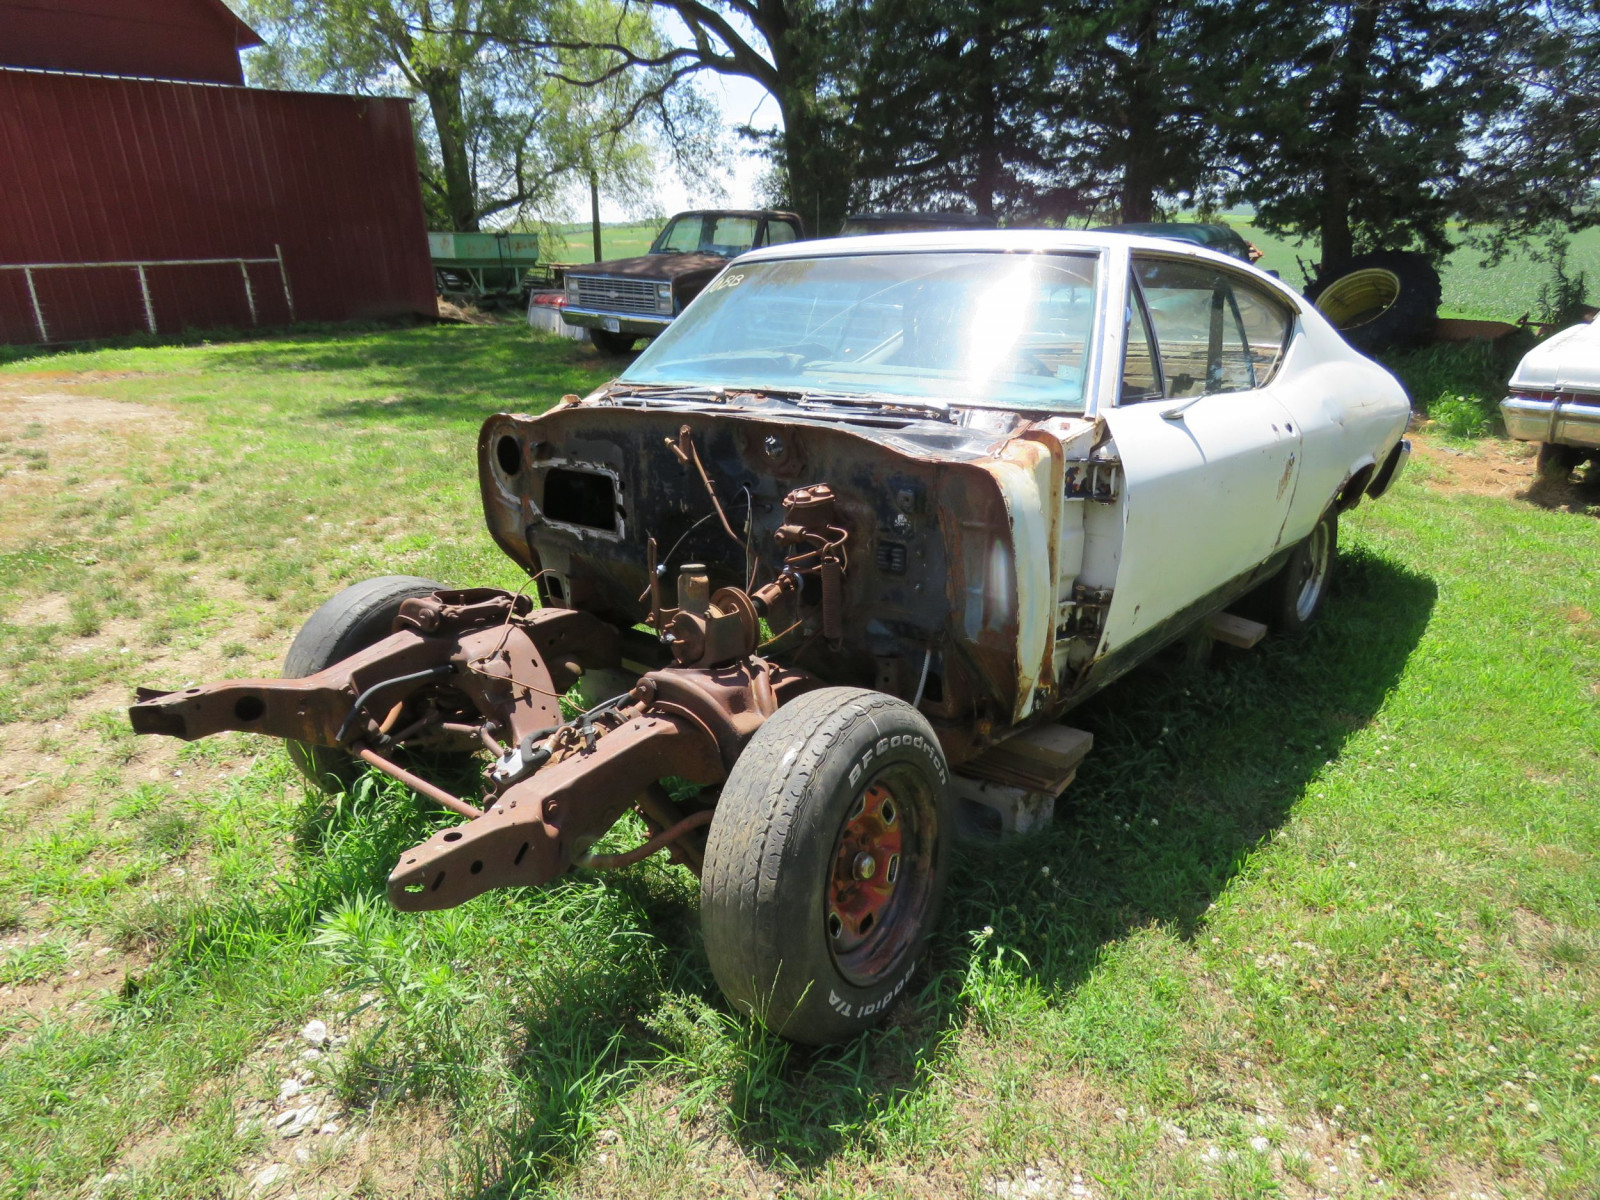 1968 Chevrolet Chevelle 2dr HT Project or Parts - Image 3